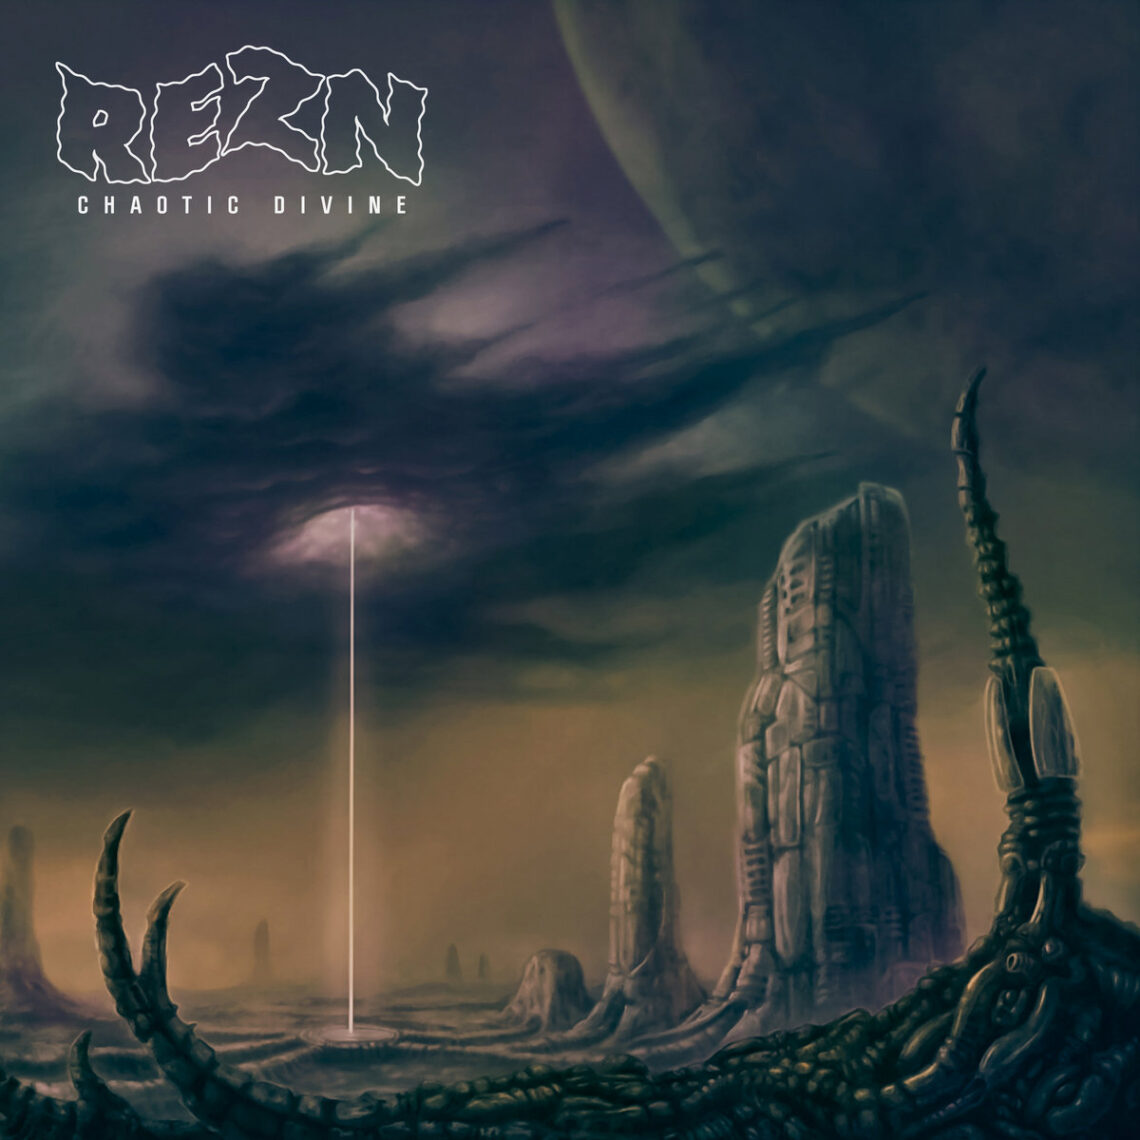 REZN – Chaotic Divine Review